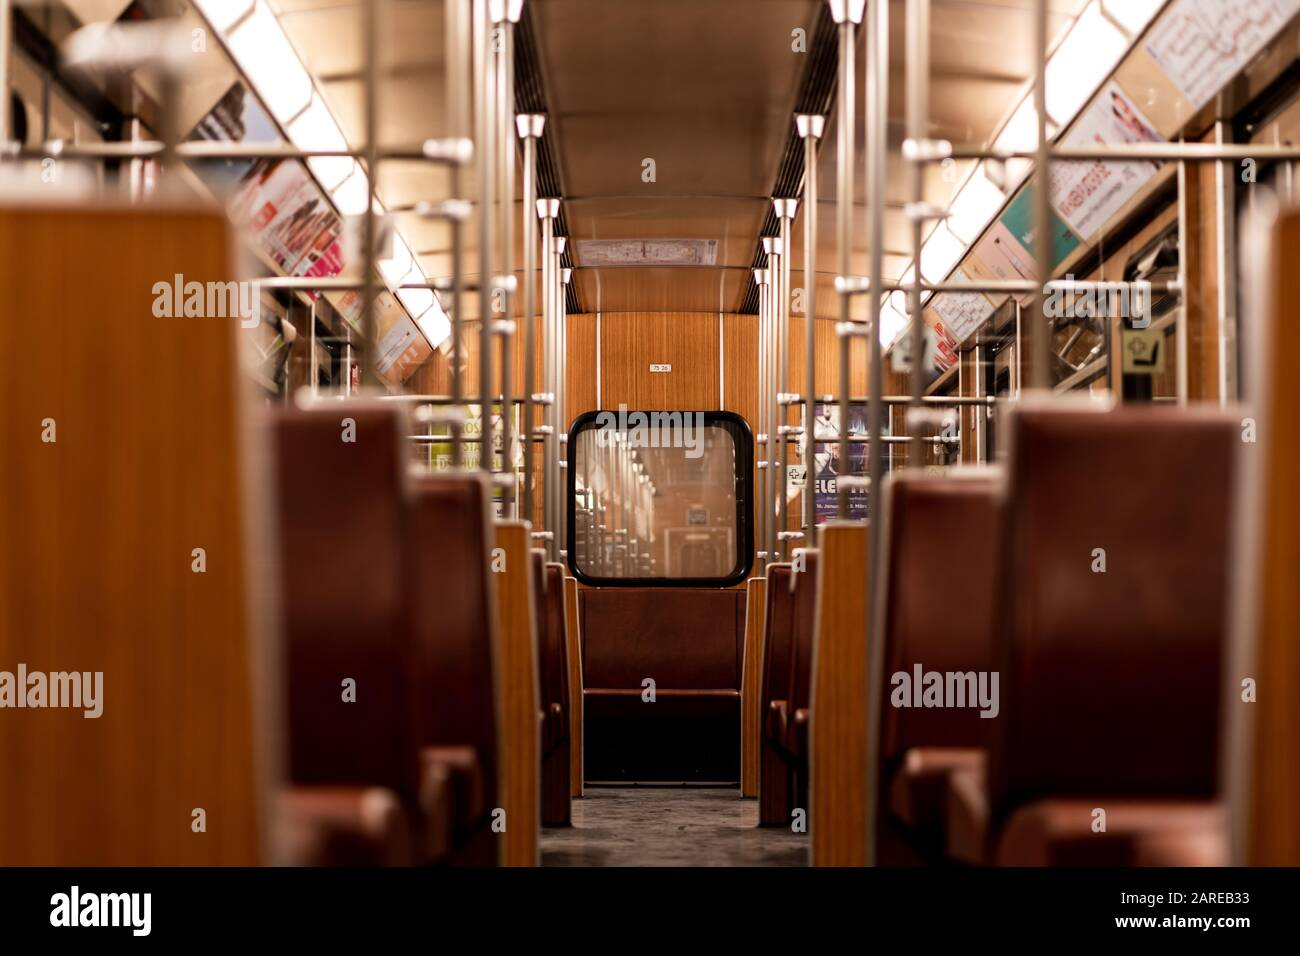 MUNICH, GERMANY - Jan 25, 2020: Interior of old vintage subway trains in Munich. Bavarian people commuting daily with these trains. Empty subway train Stock Photo